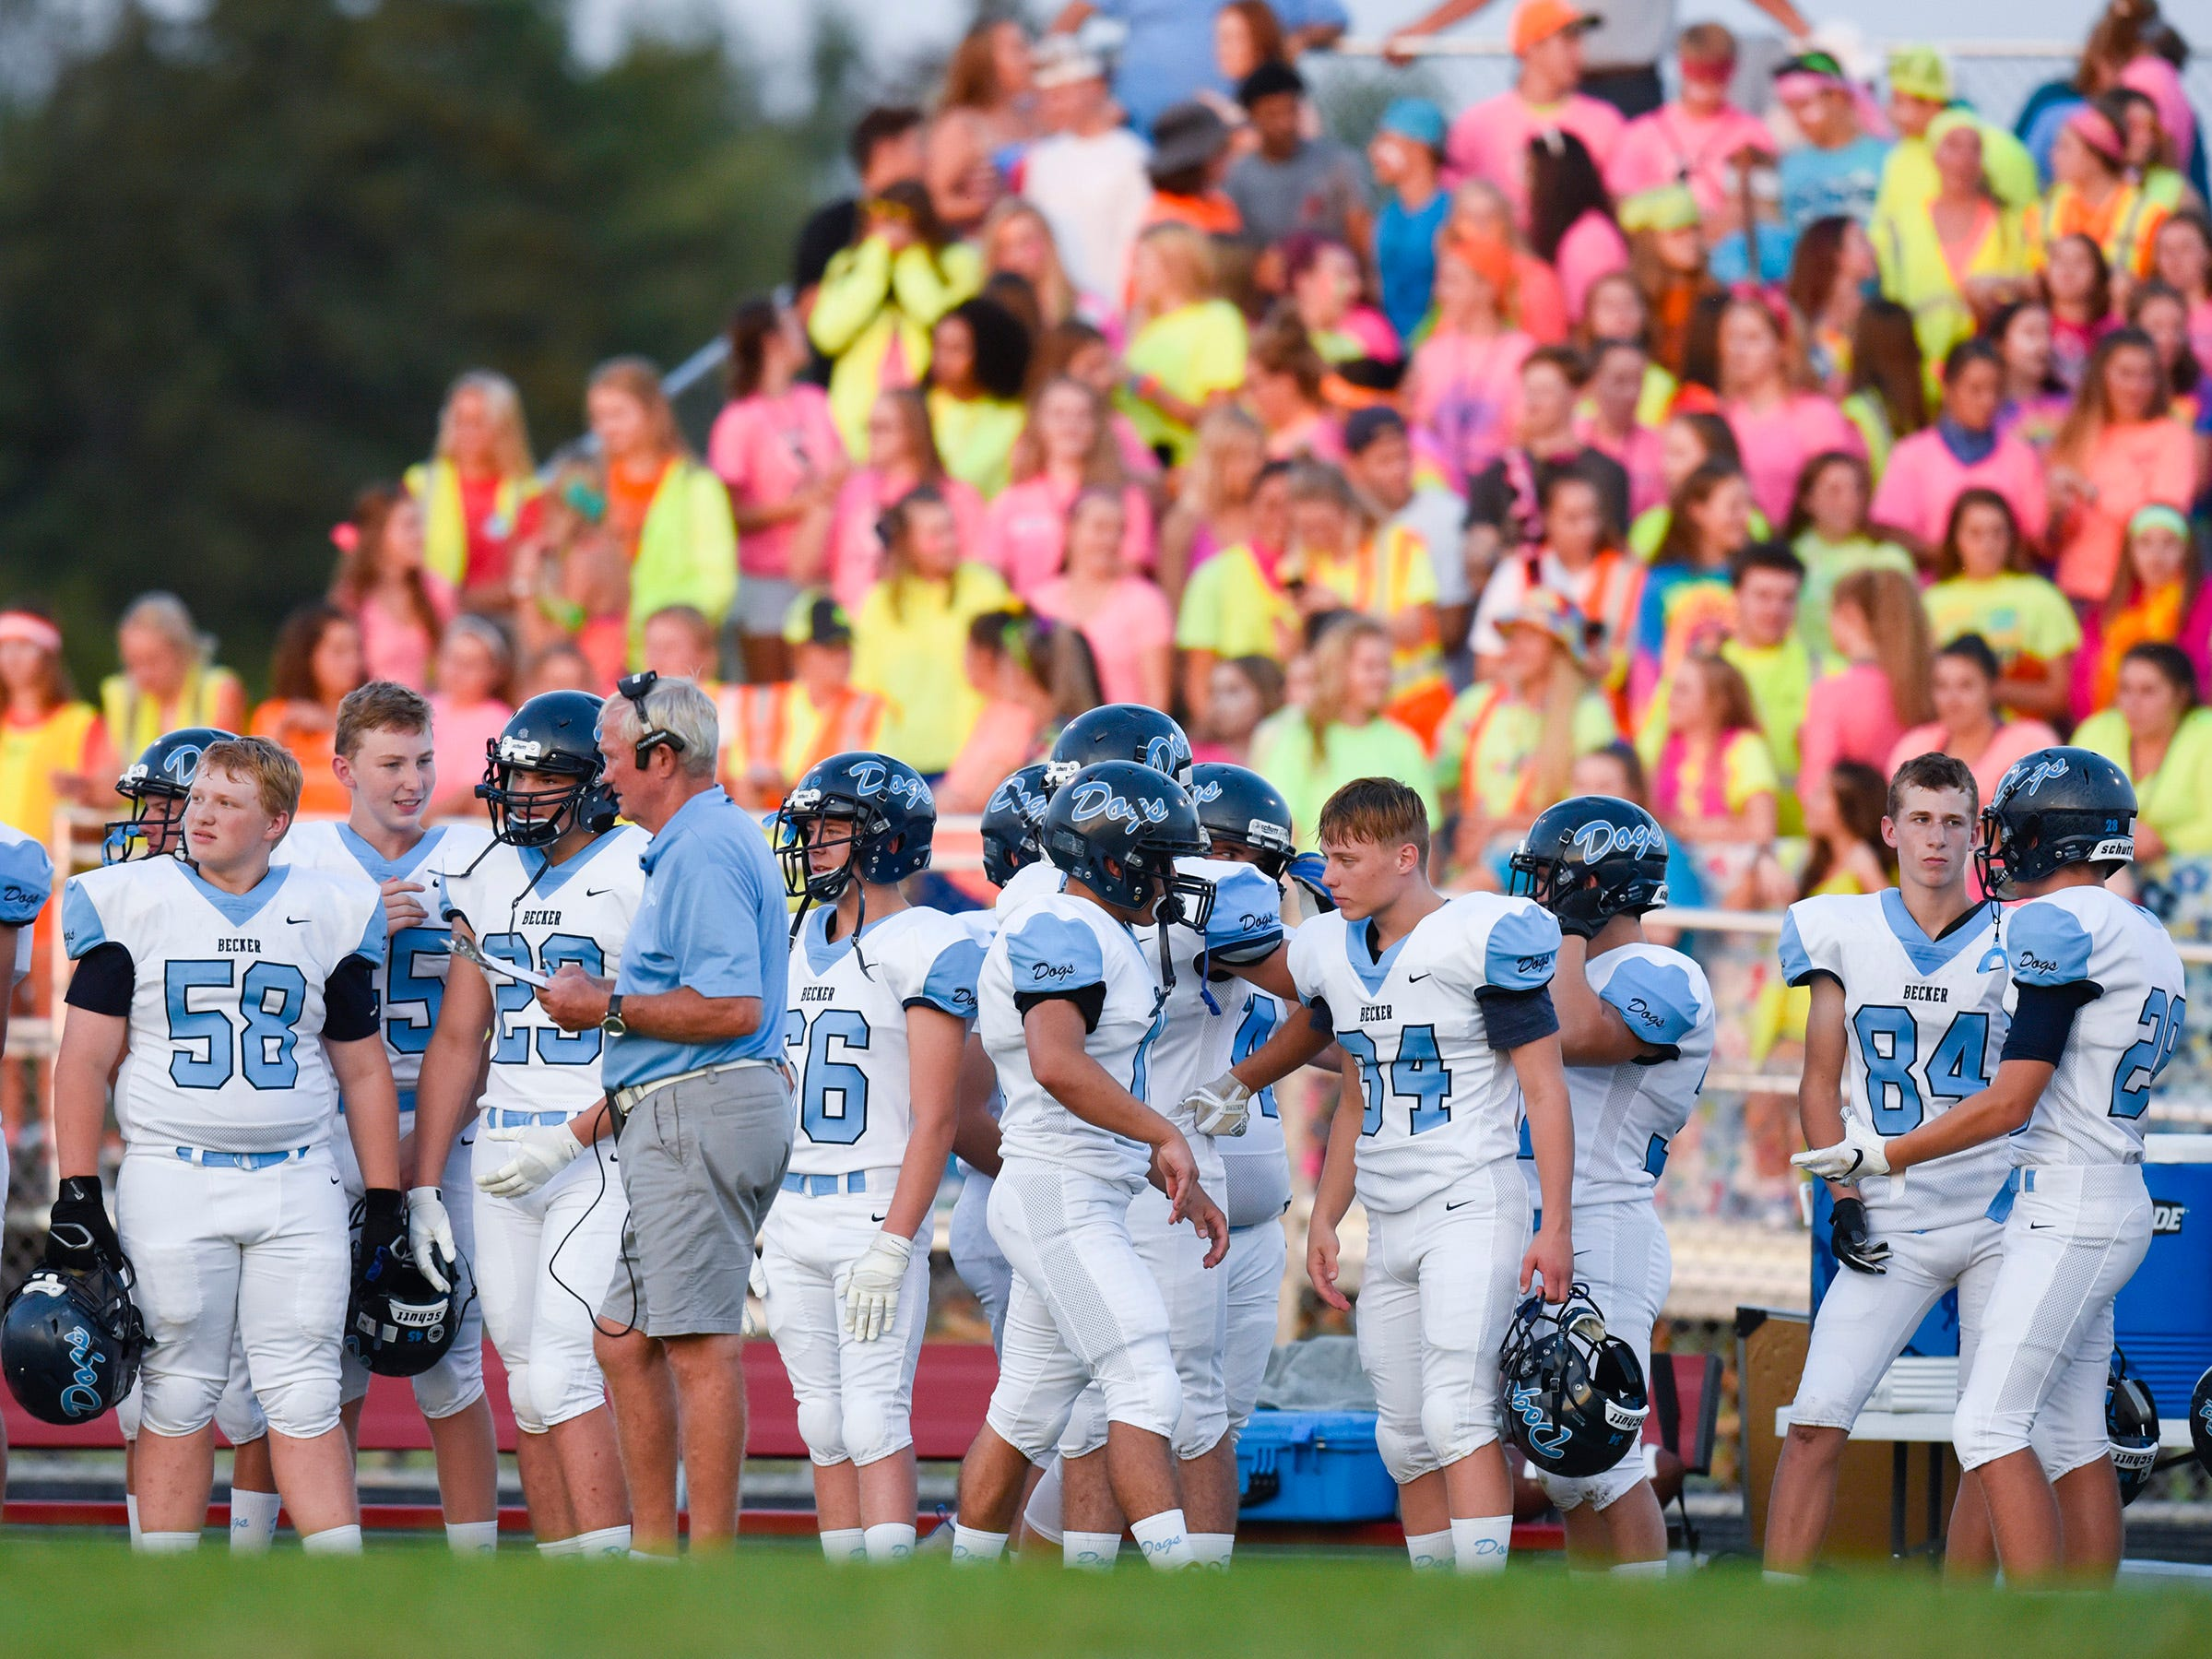 Becker players and fans on the sidelines  during the first half Friday, Sept. 14, in Cold Spring.